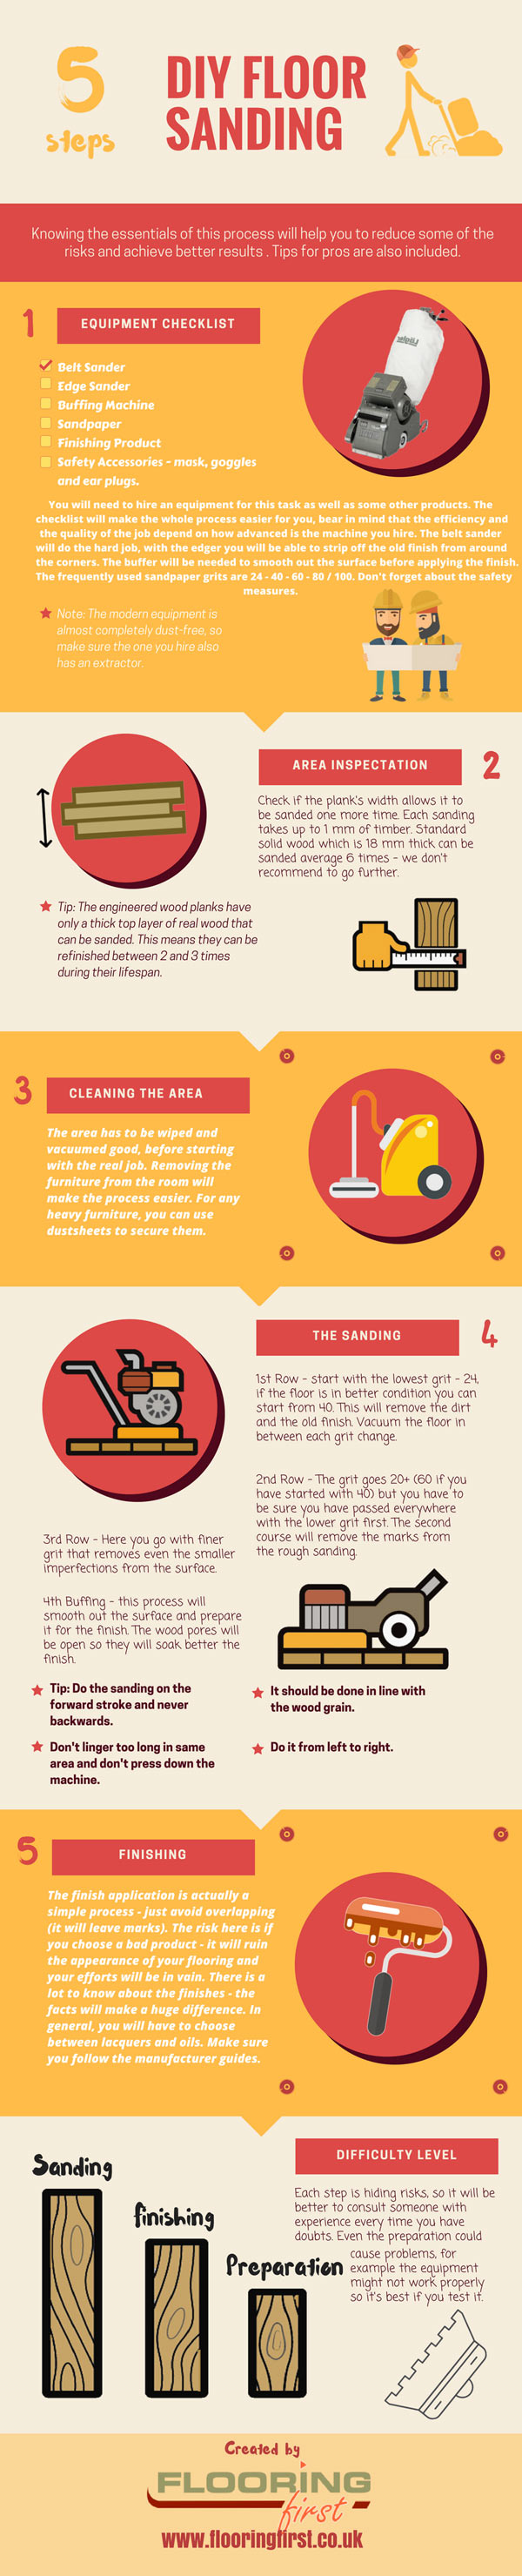 infographic showing tips for floor sanding